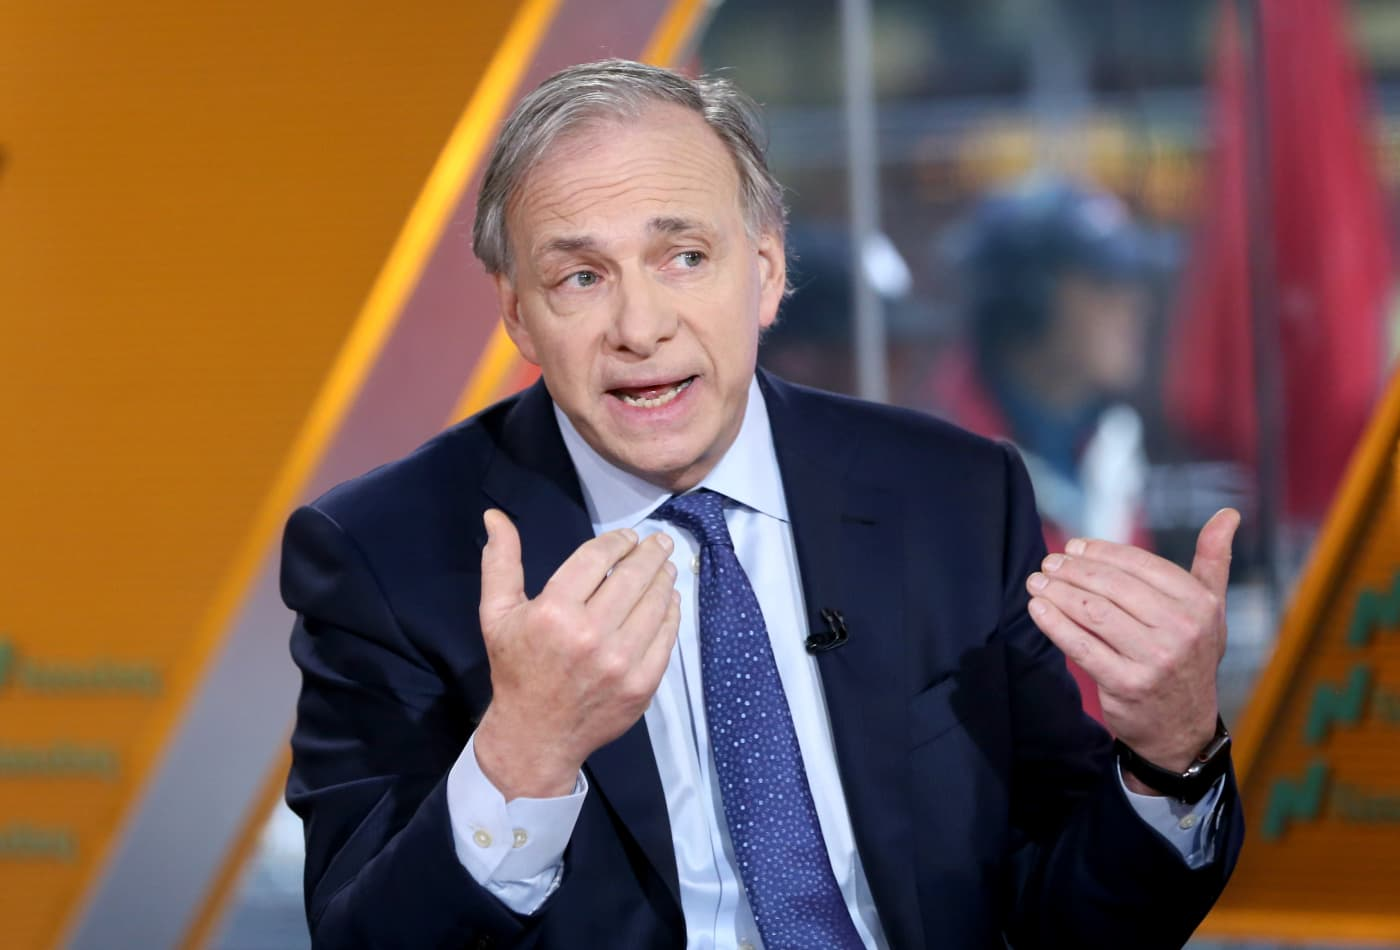 Ray Dalio to younger self: 'Why are you so stupidly arrogant!?!'